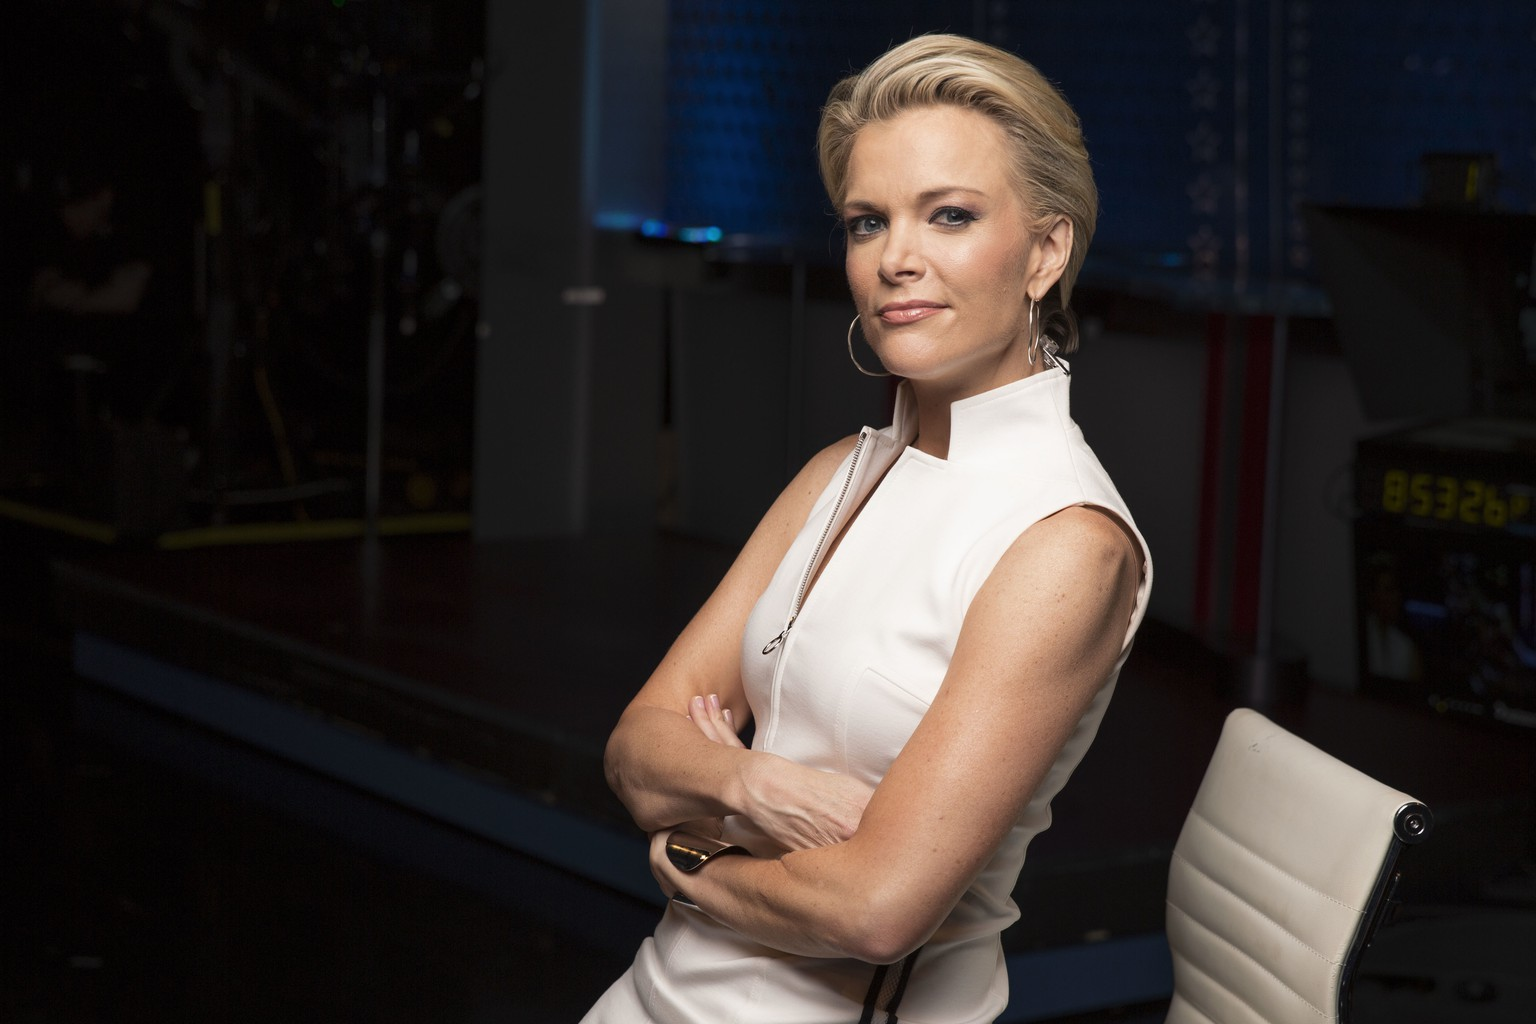 "FILE - In this May 5, 2016 file photo, Megyn Kelly poses for a portrait in New York. Kelly is calling on President-elect Donald Trump's social media director to stop encouraging hostile elements among some of his supporters. London-based newspaper, The Guardian, reports that the Fox News anchor told an audience at a speaking event in Washington Monday, Dec. 5, 2016, that there's a small group of Trump supporters ""that really enjoys nastiness and threats."" She said Dan Scavino's job during the campaign was ""to stir these people up and that man needs to stop doing that.""(Photo by Victoria Will/Invision/AP, File)"